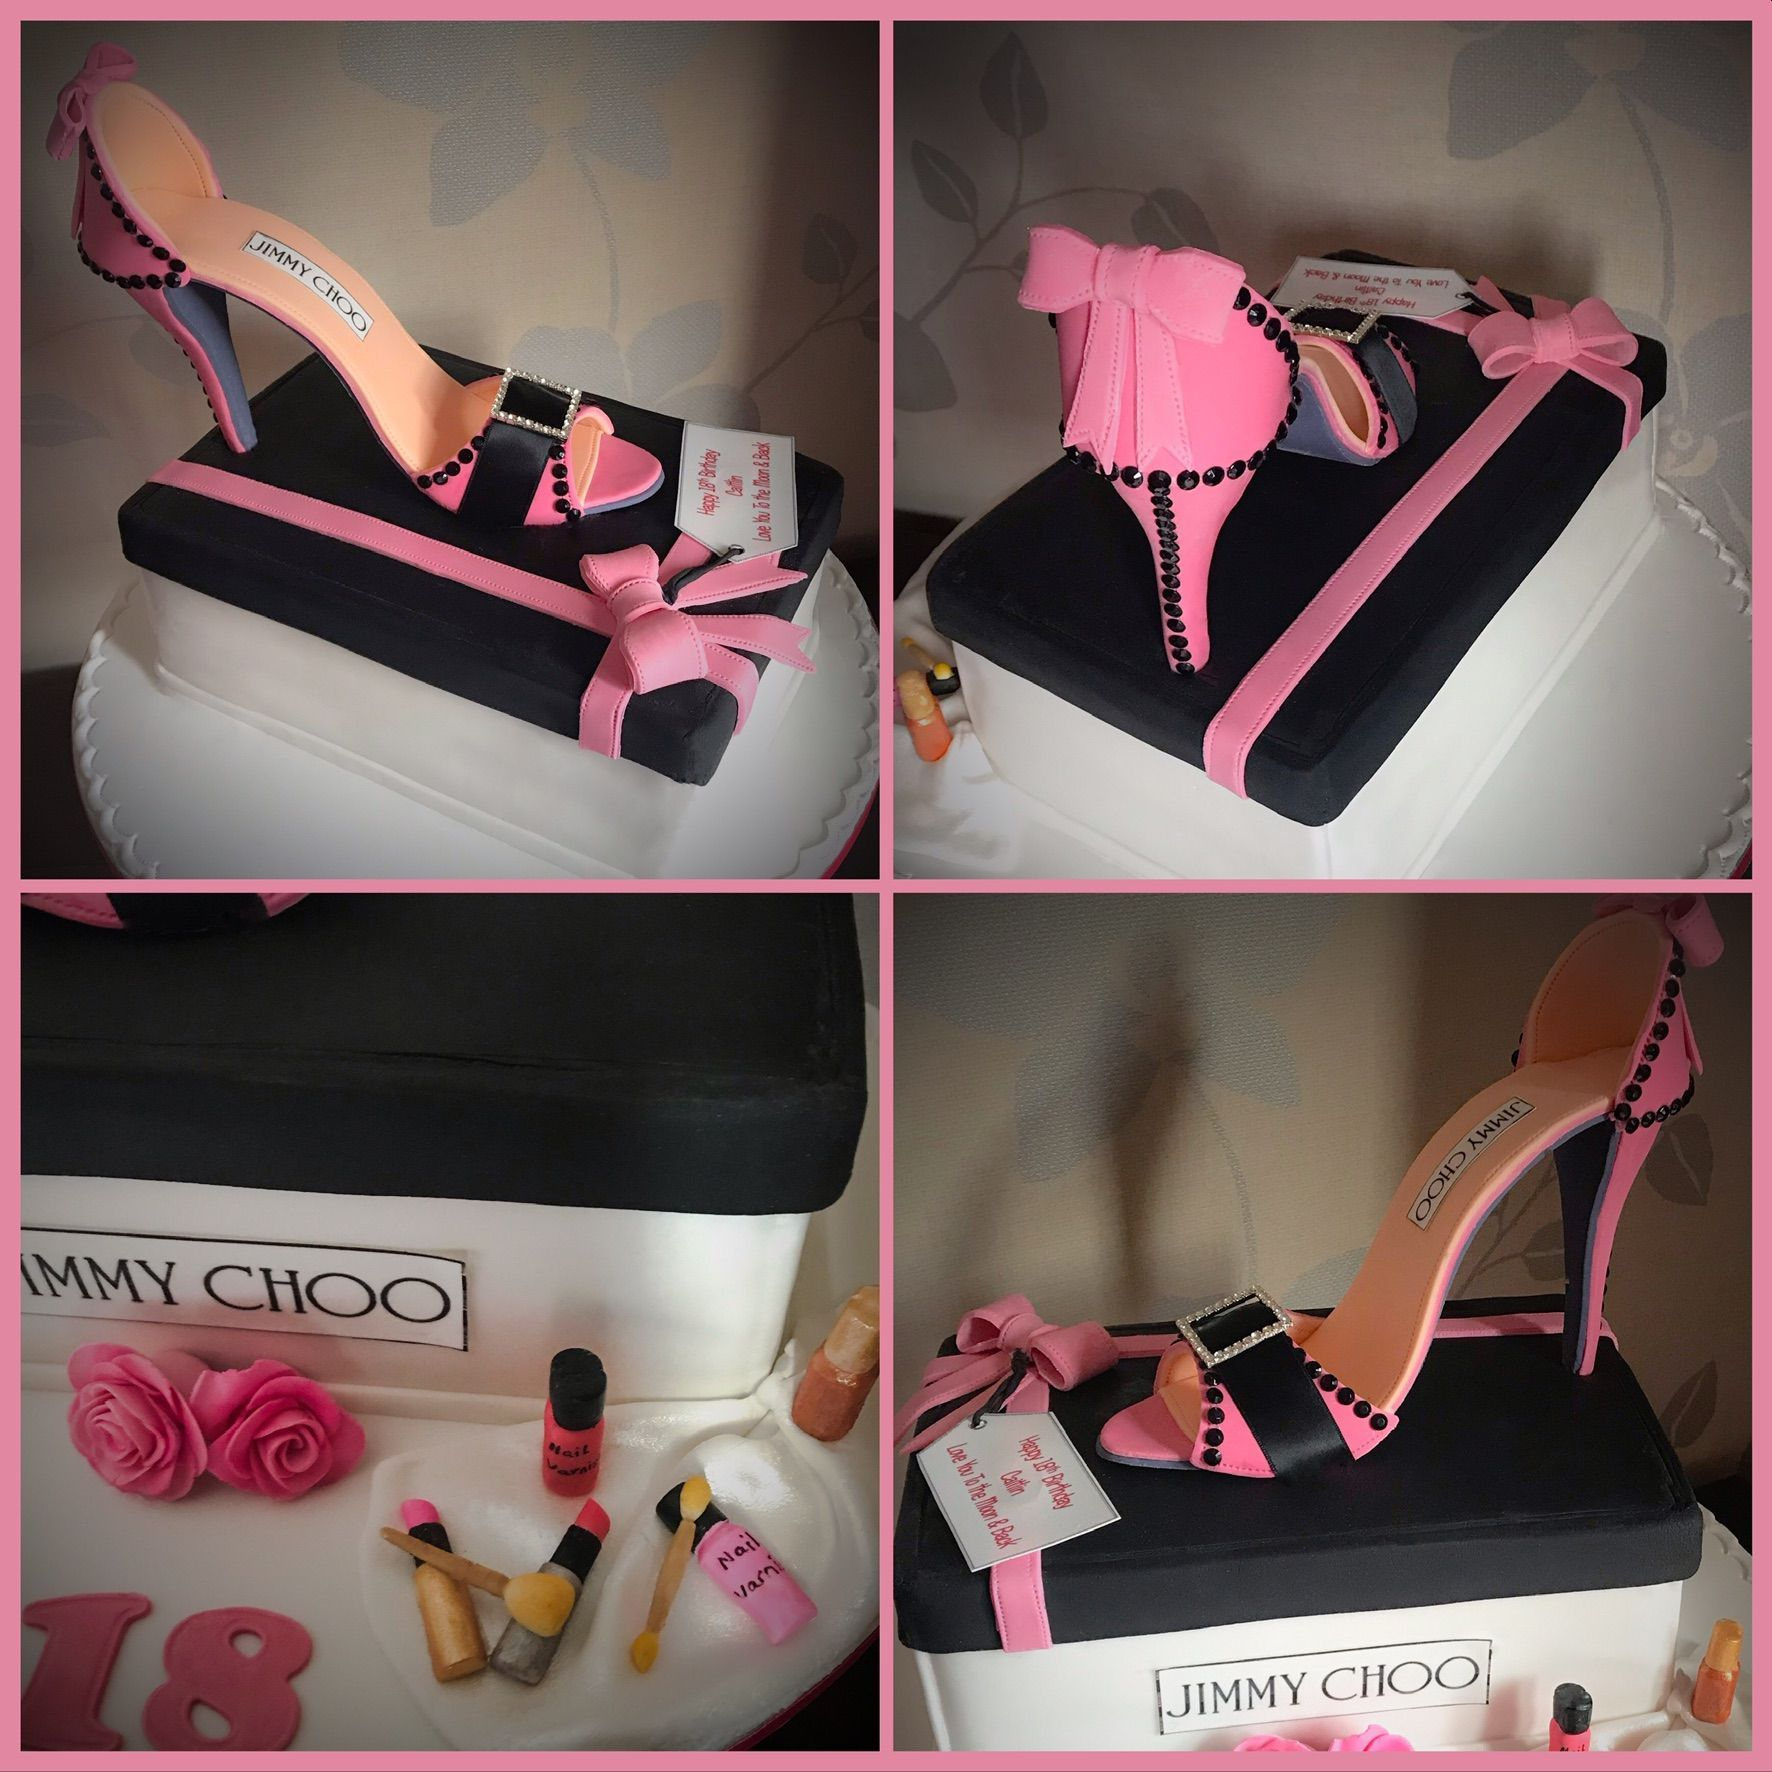 jimmy choo shoe cake collage